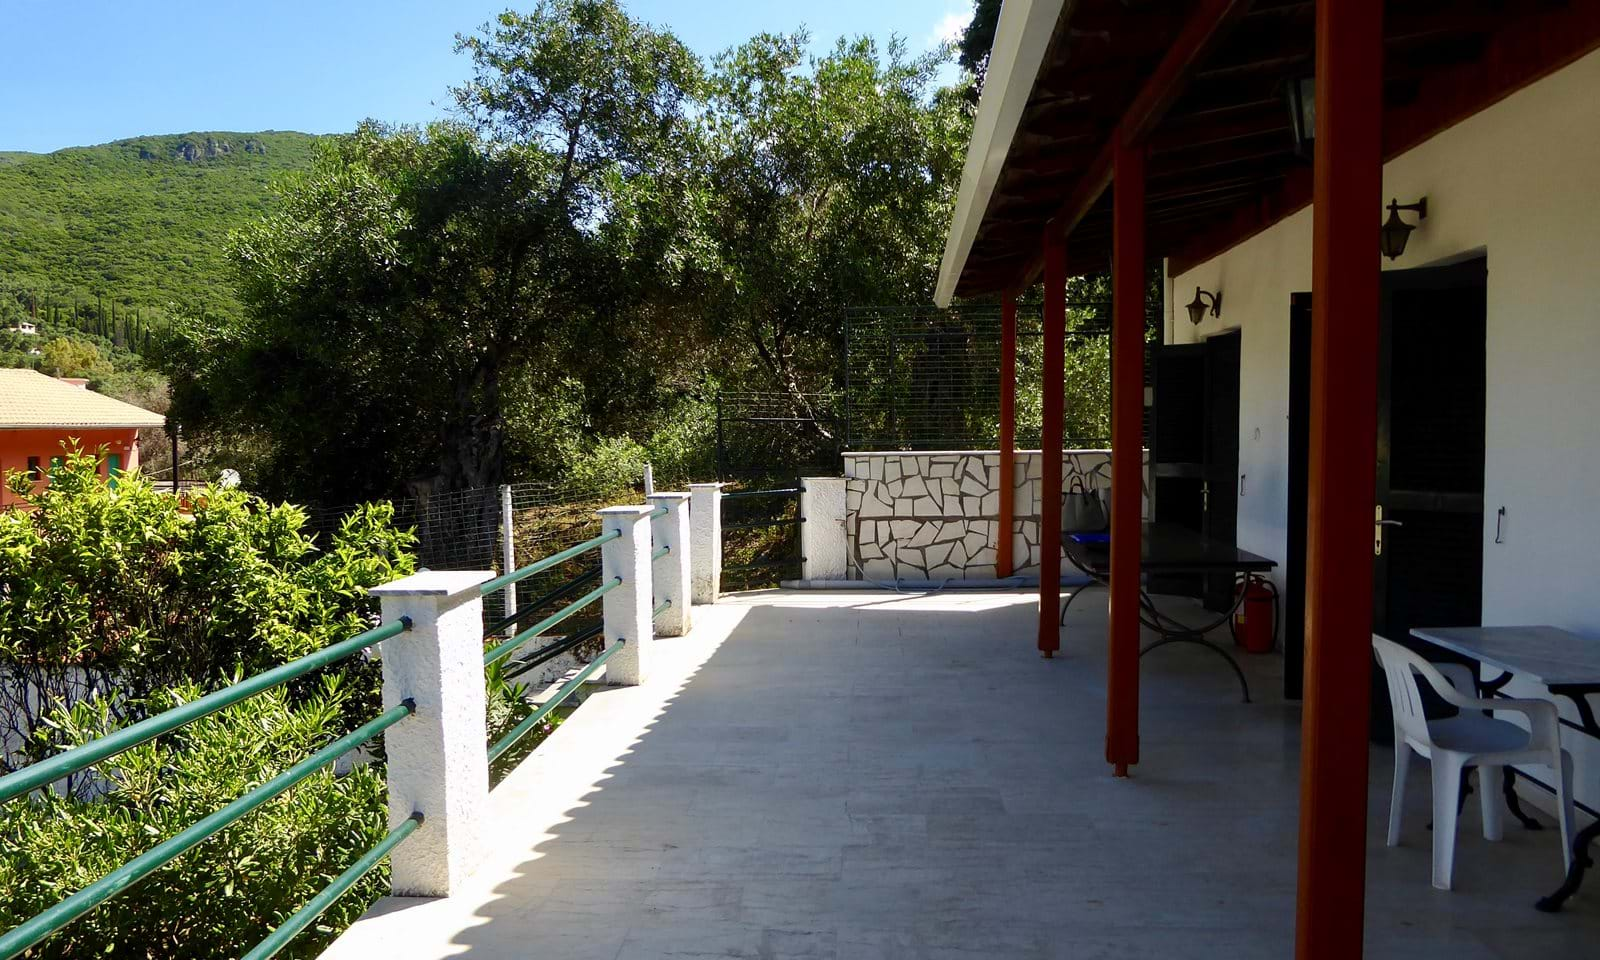 Covered veranda at the front side of the house